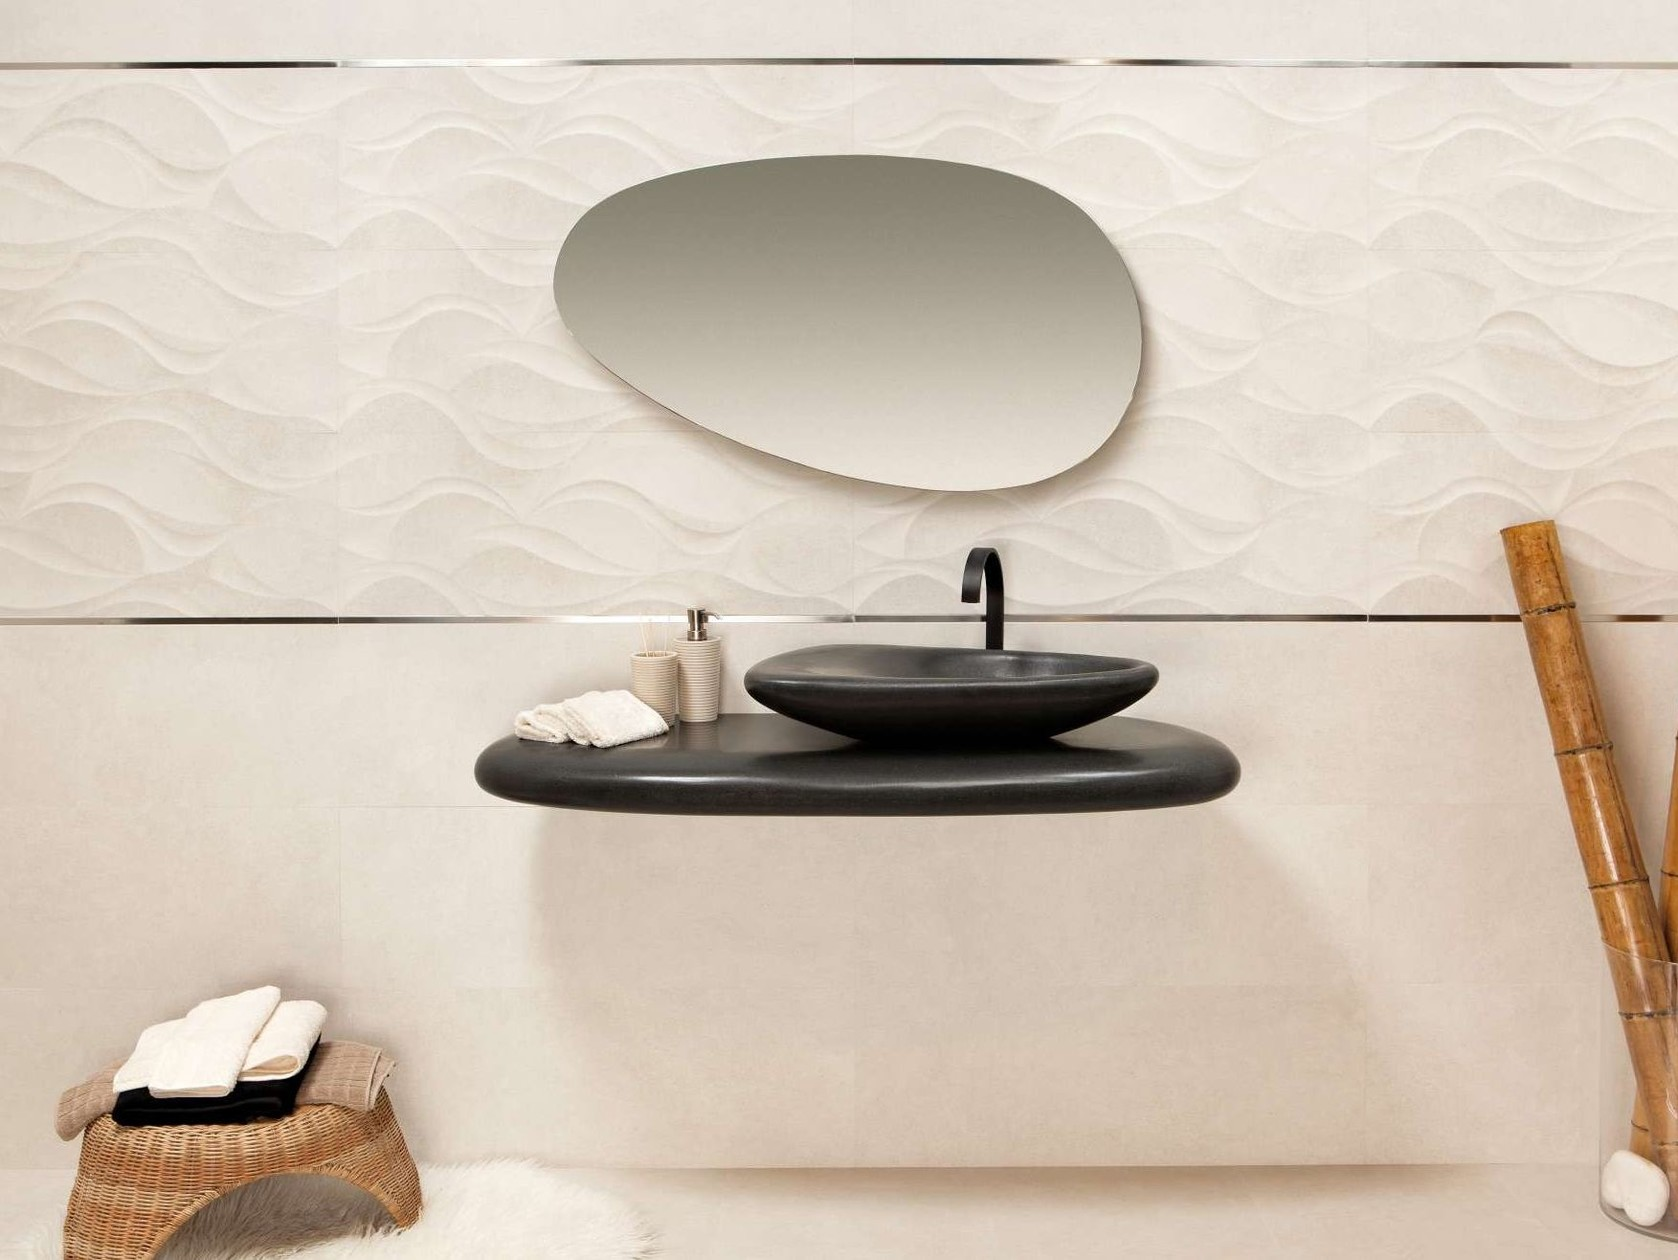 Bathroom with all organic rounded shapes, from the vanity to the sink to the mirror.